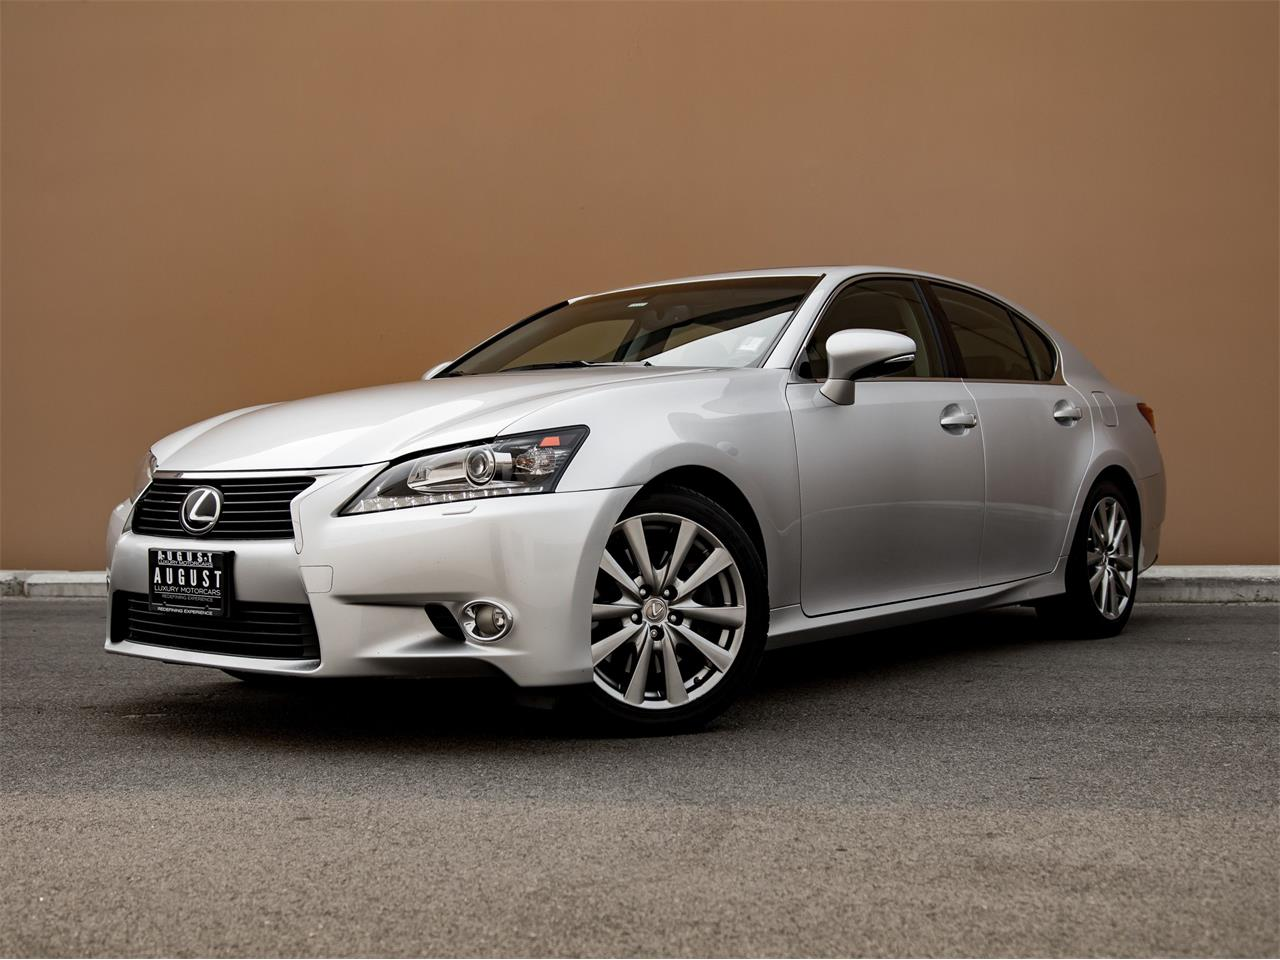 2013 Lexus GS300 (CC-1391666) for sale in Kelowna, British Columbia